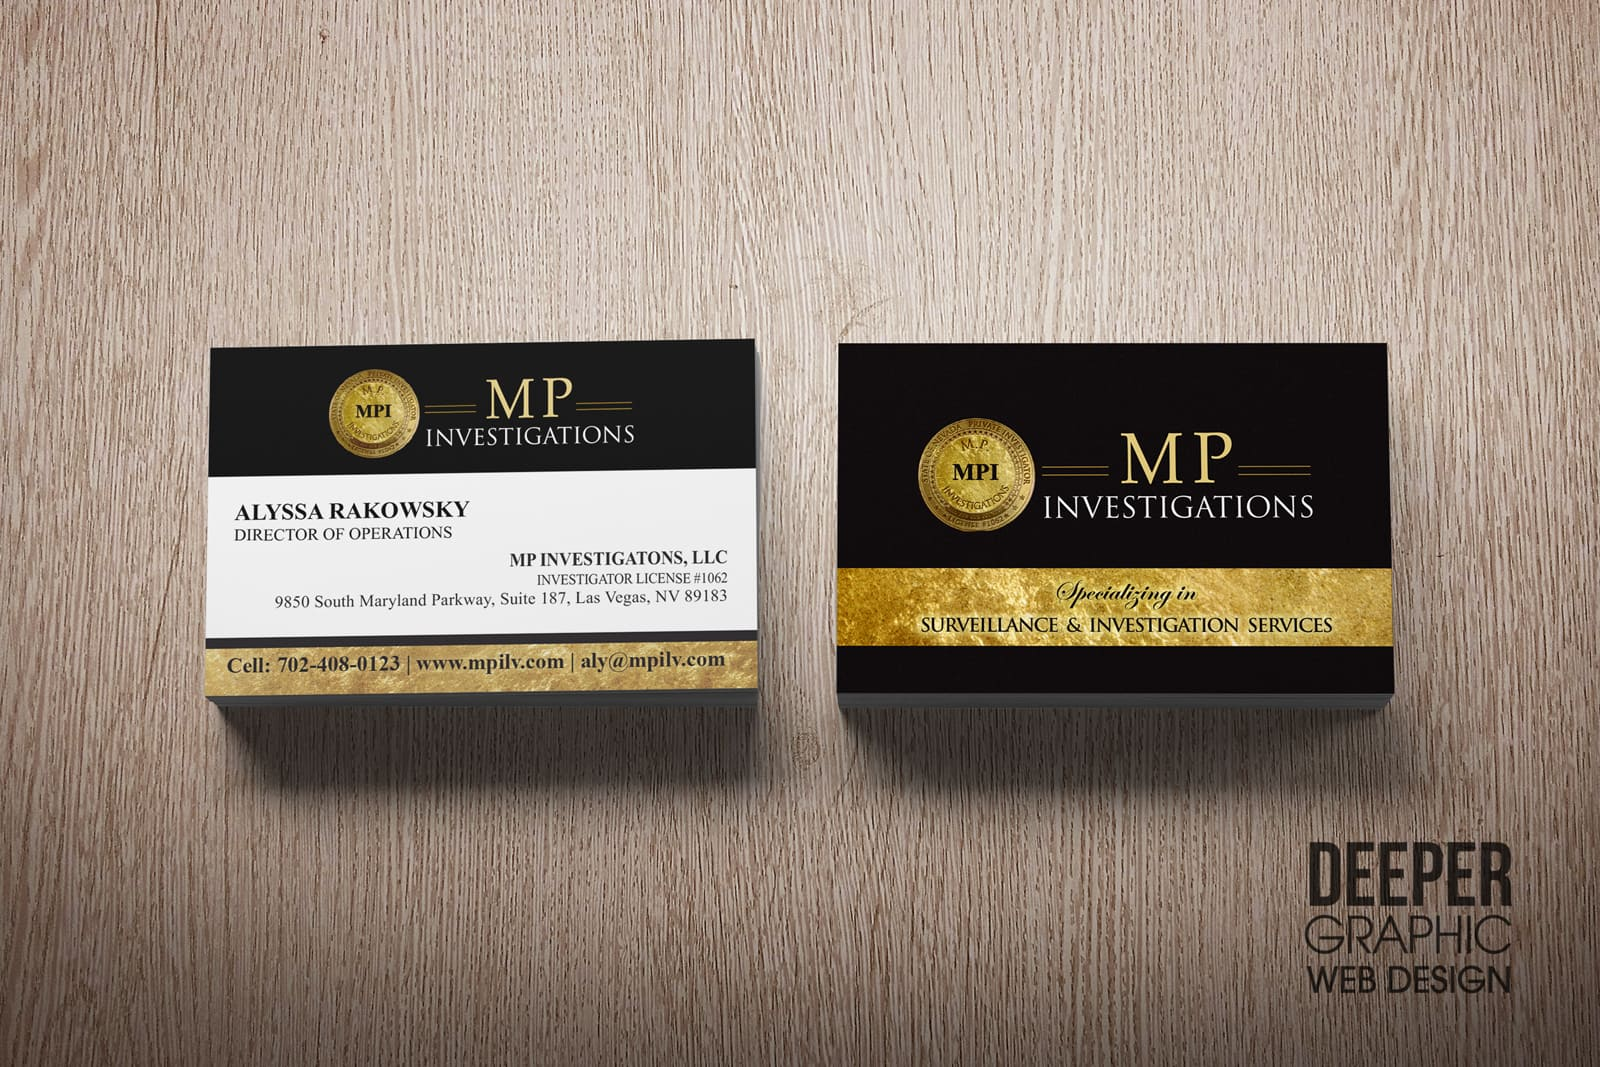 businesscarddesign lasvegas_05 min - Business Cards Las Vegas